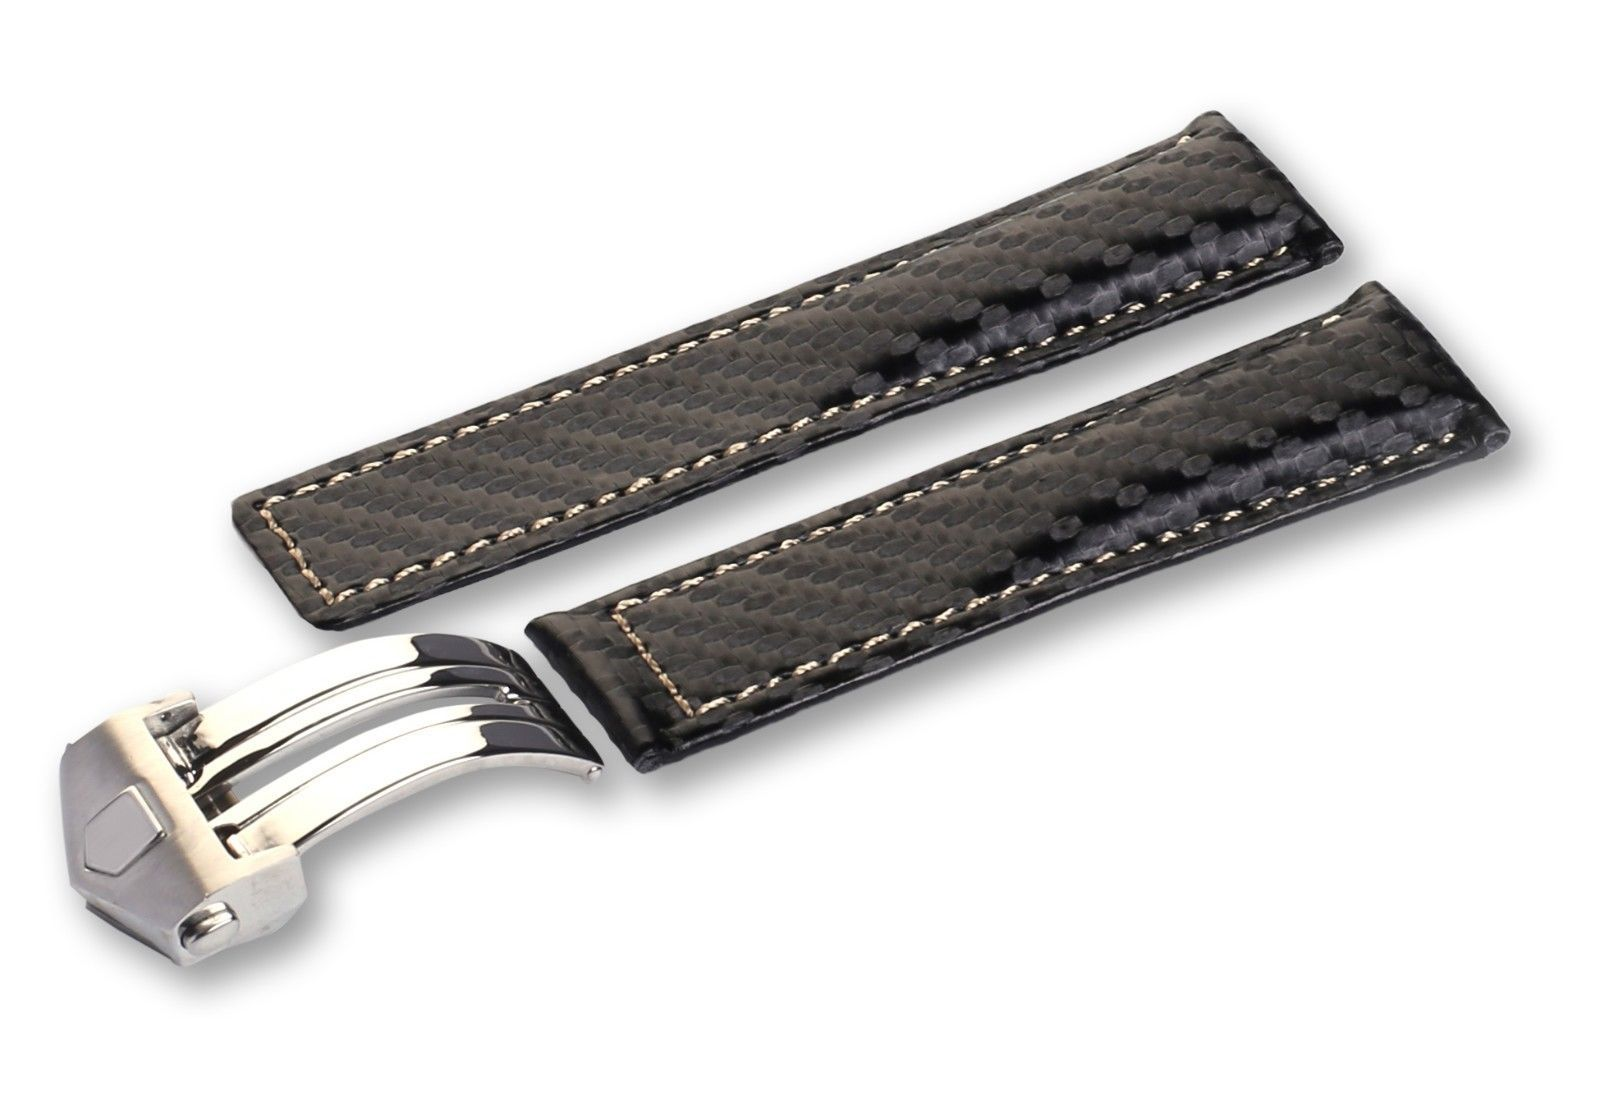 For Tag Heuer watch Black/White Genuine Carbon/Leather Strap/Band 20 22 24mm - $25.11 - $37.26